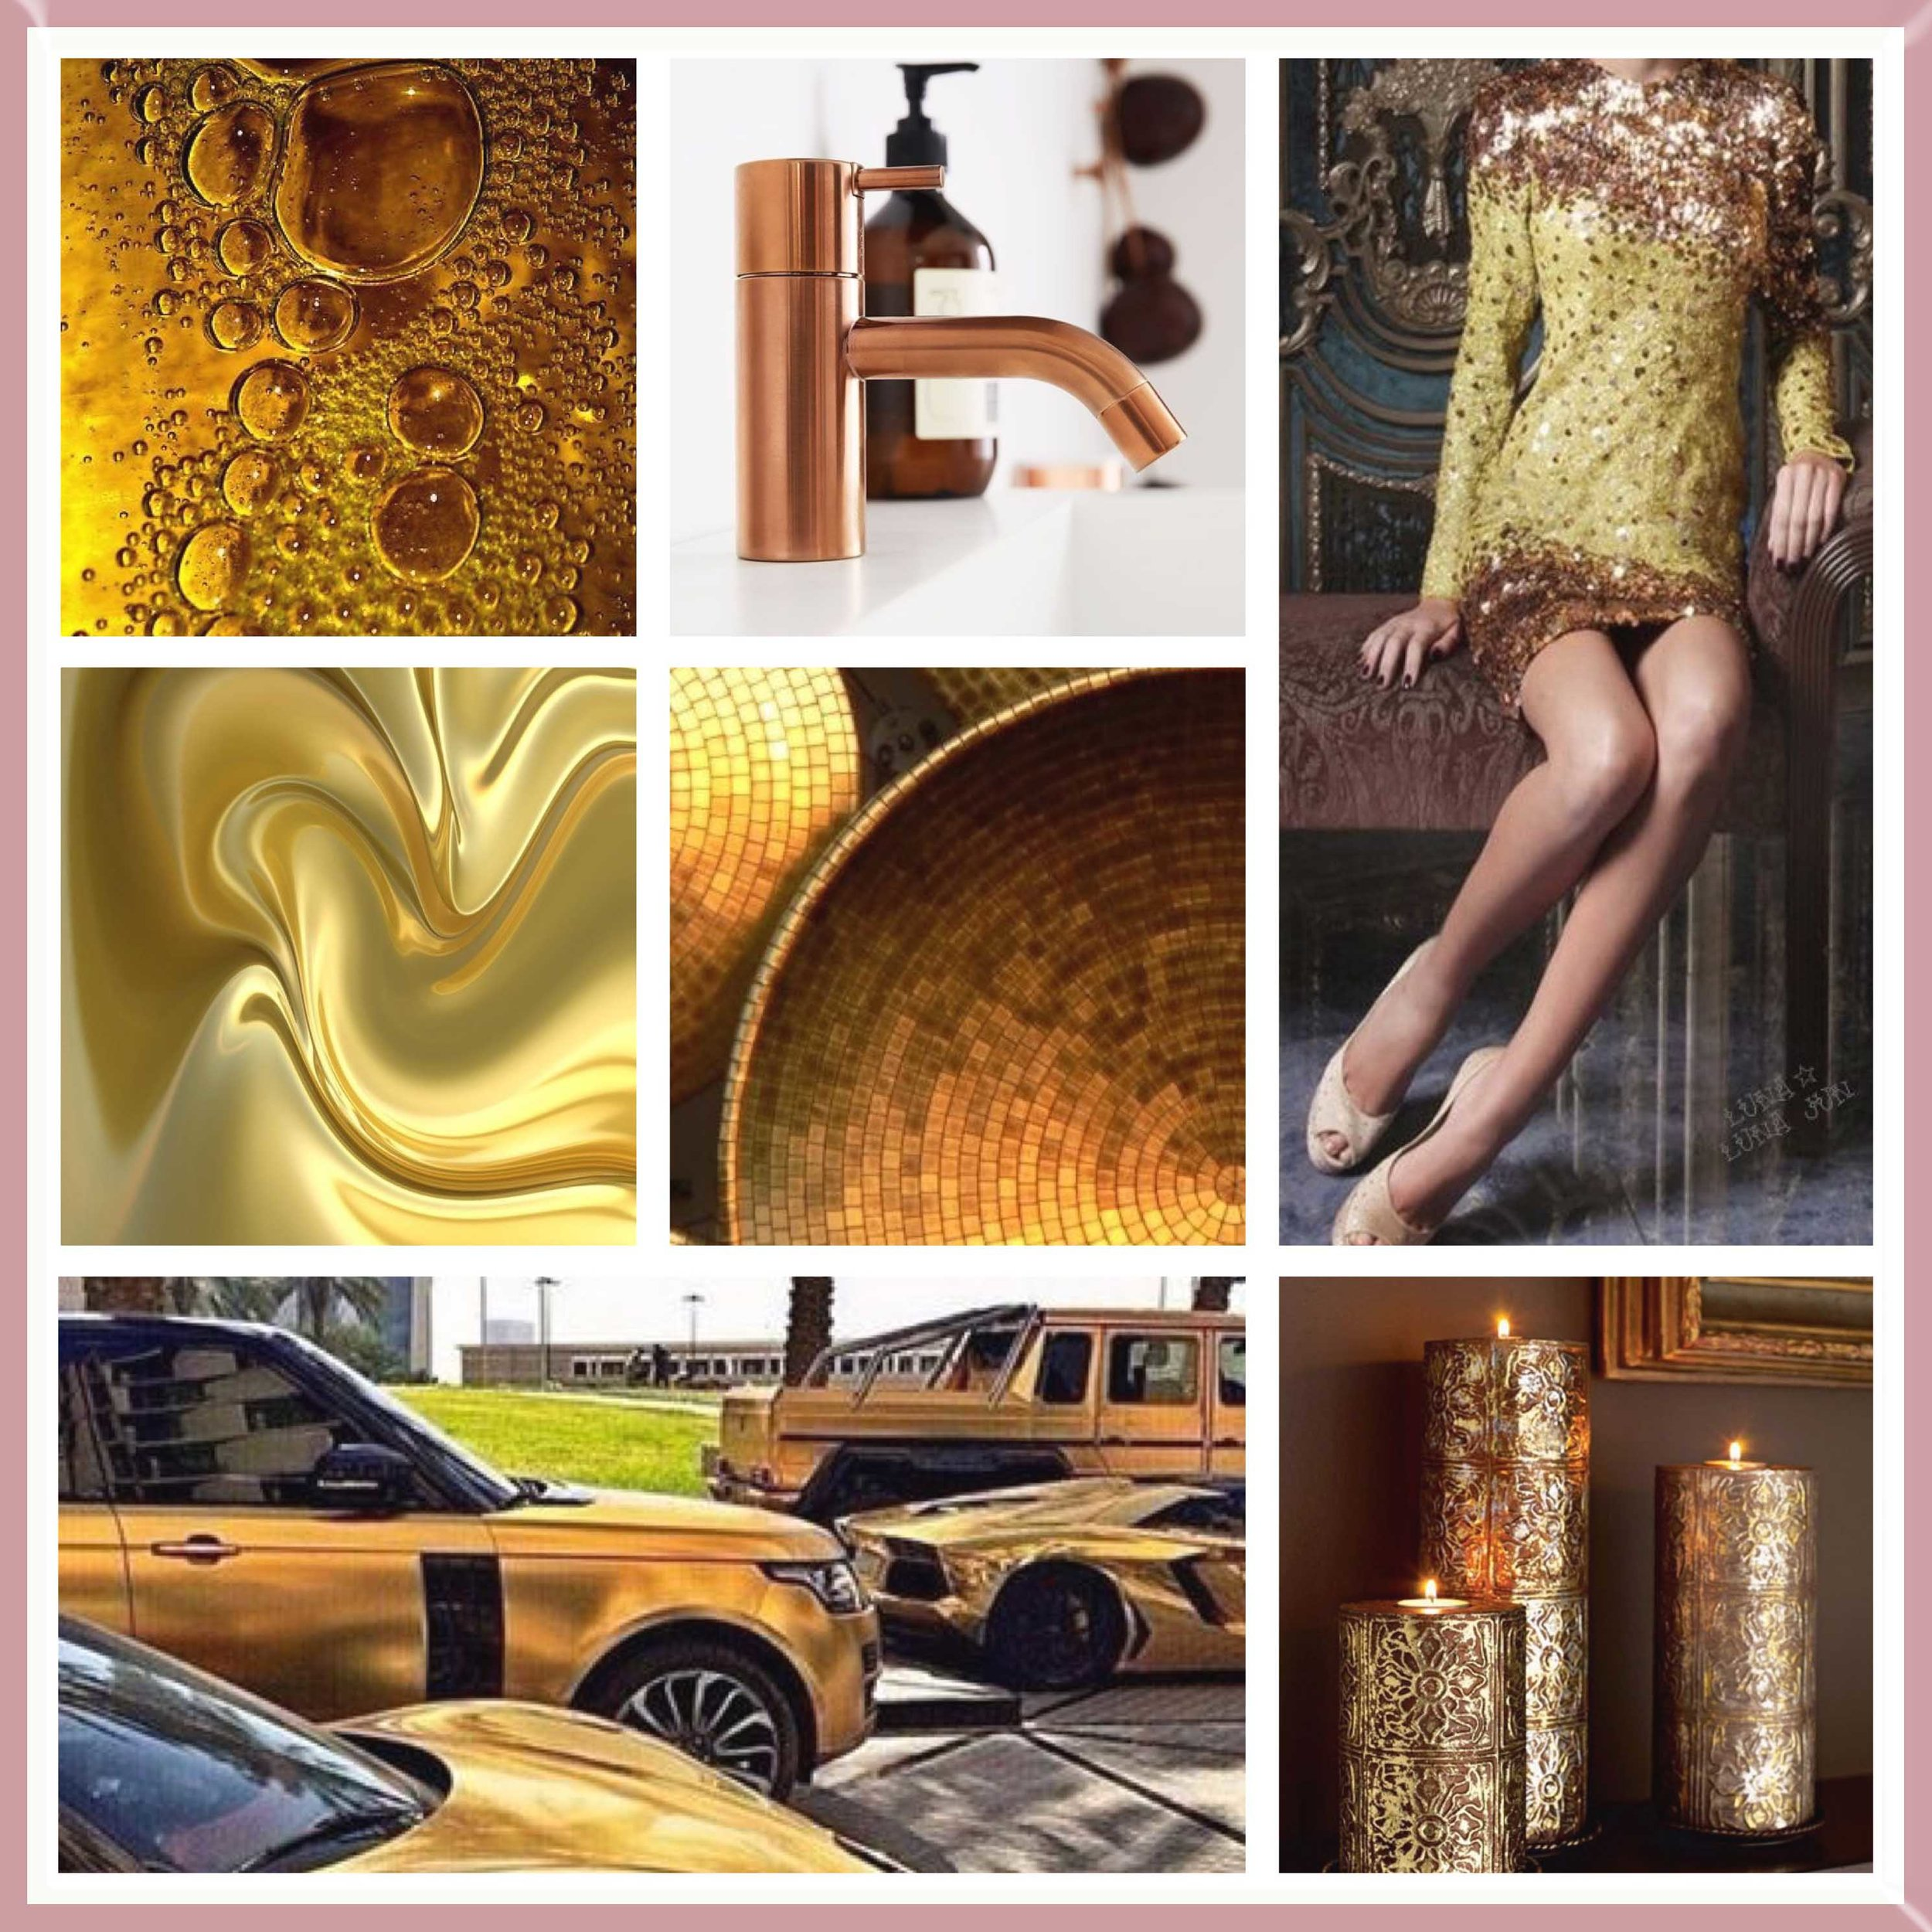 Gold and Bronze moodboard designed by Luxe by Minihaha & co.